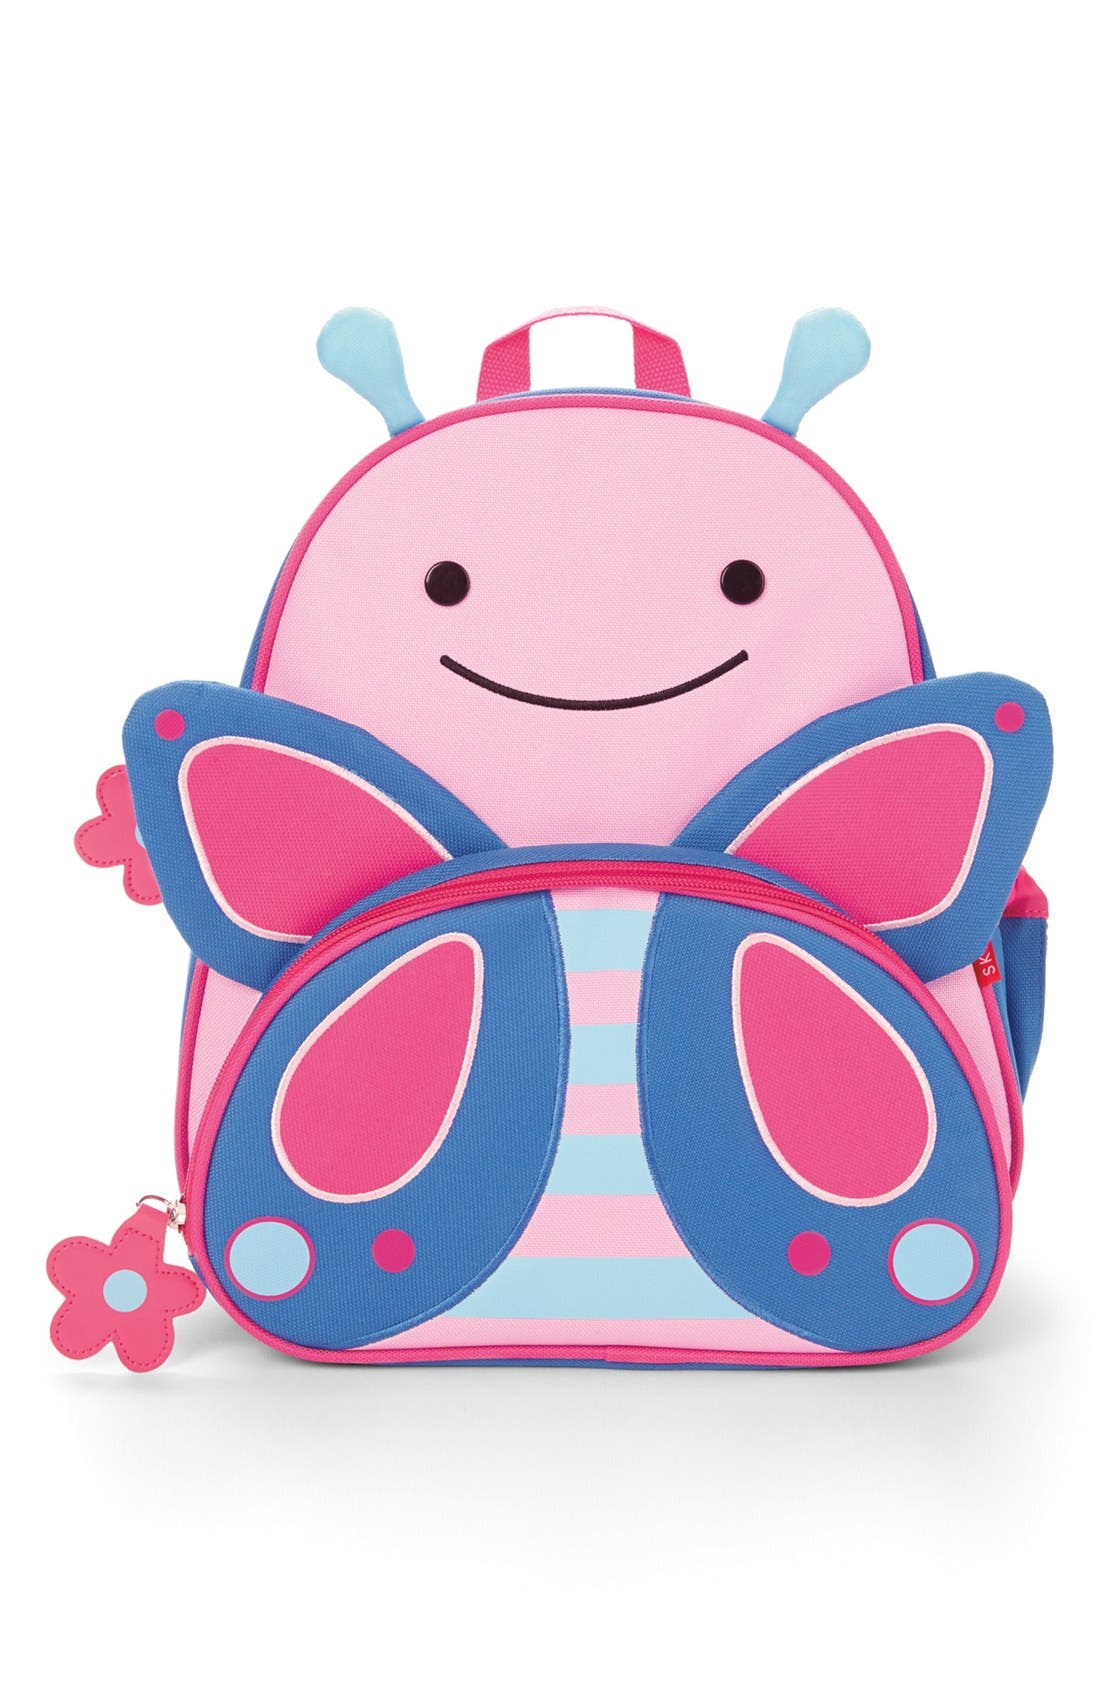 Zoo Pack Backpack,                             Main thumbnail 1, color,                             Pink Solid